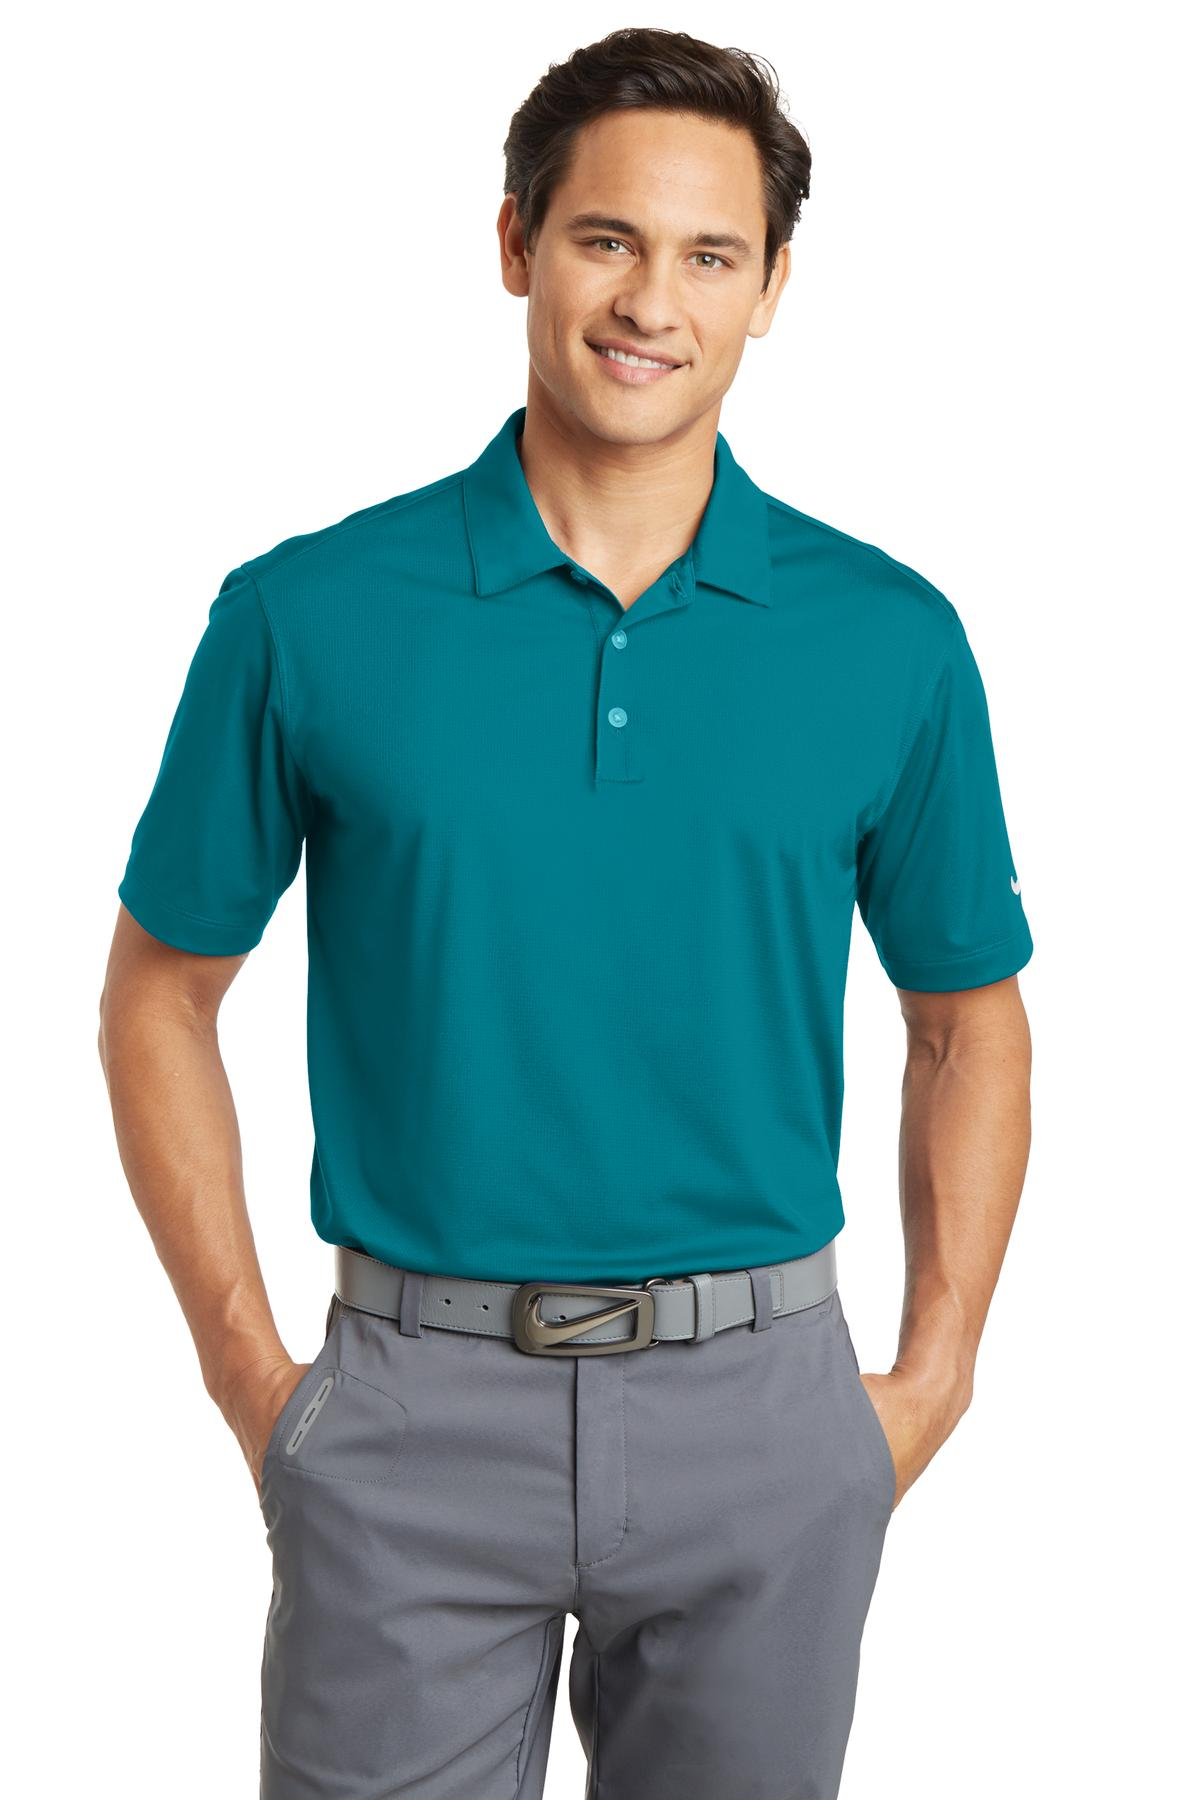 Nike Dri-FIT Vertical Mesh Polo. 637167 - Blustery